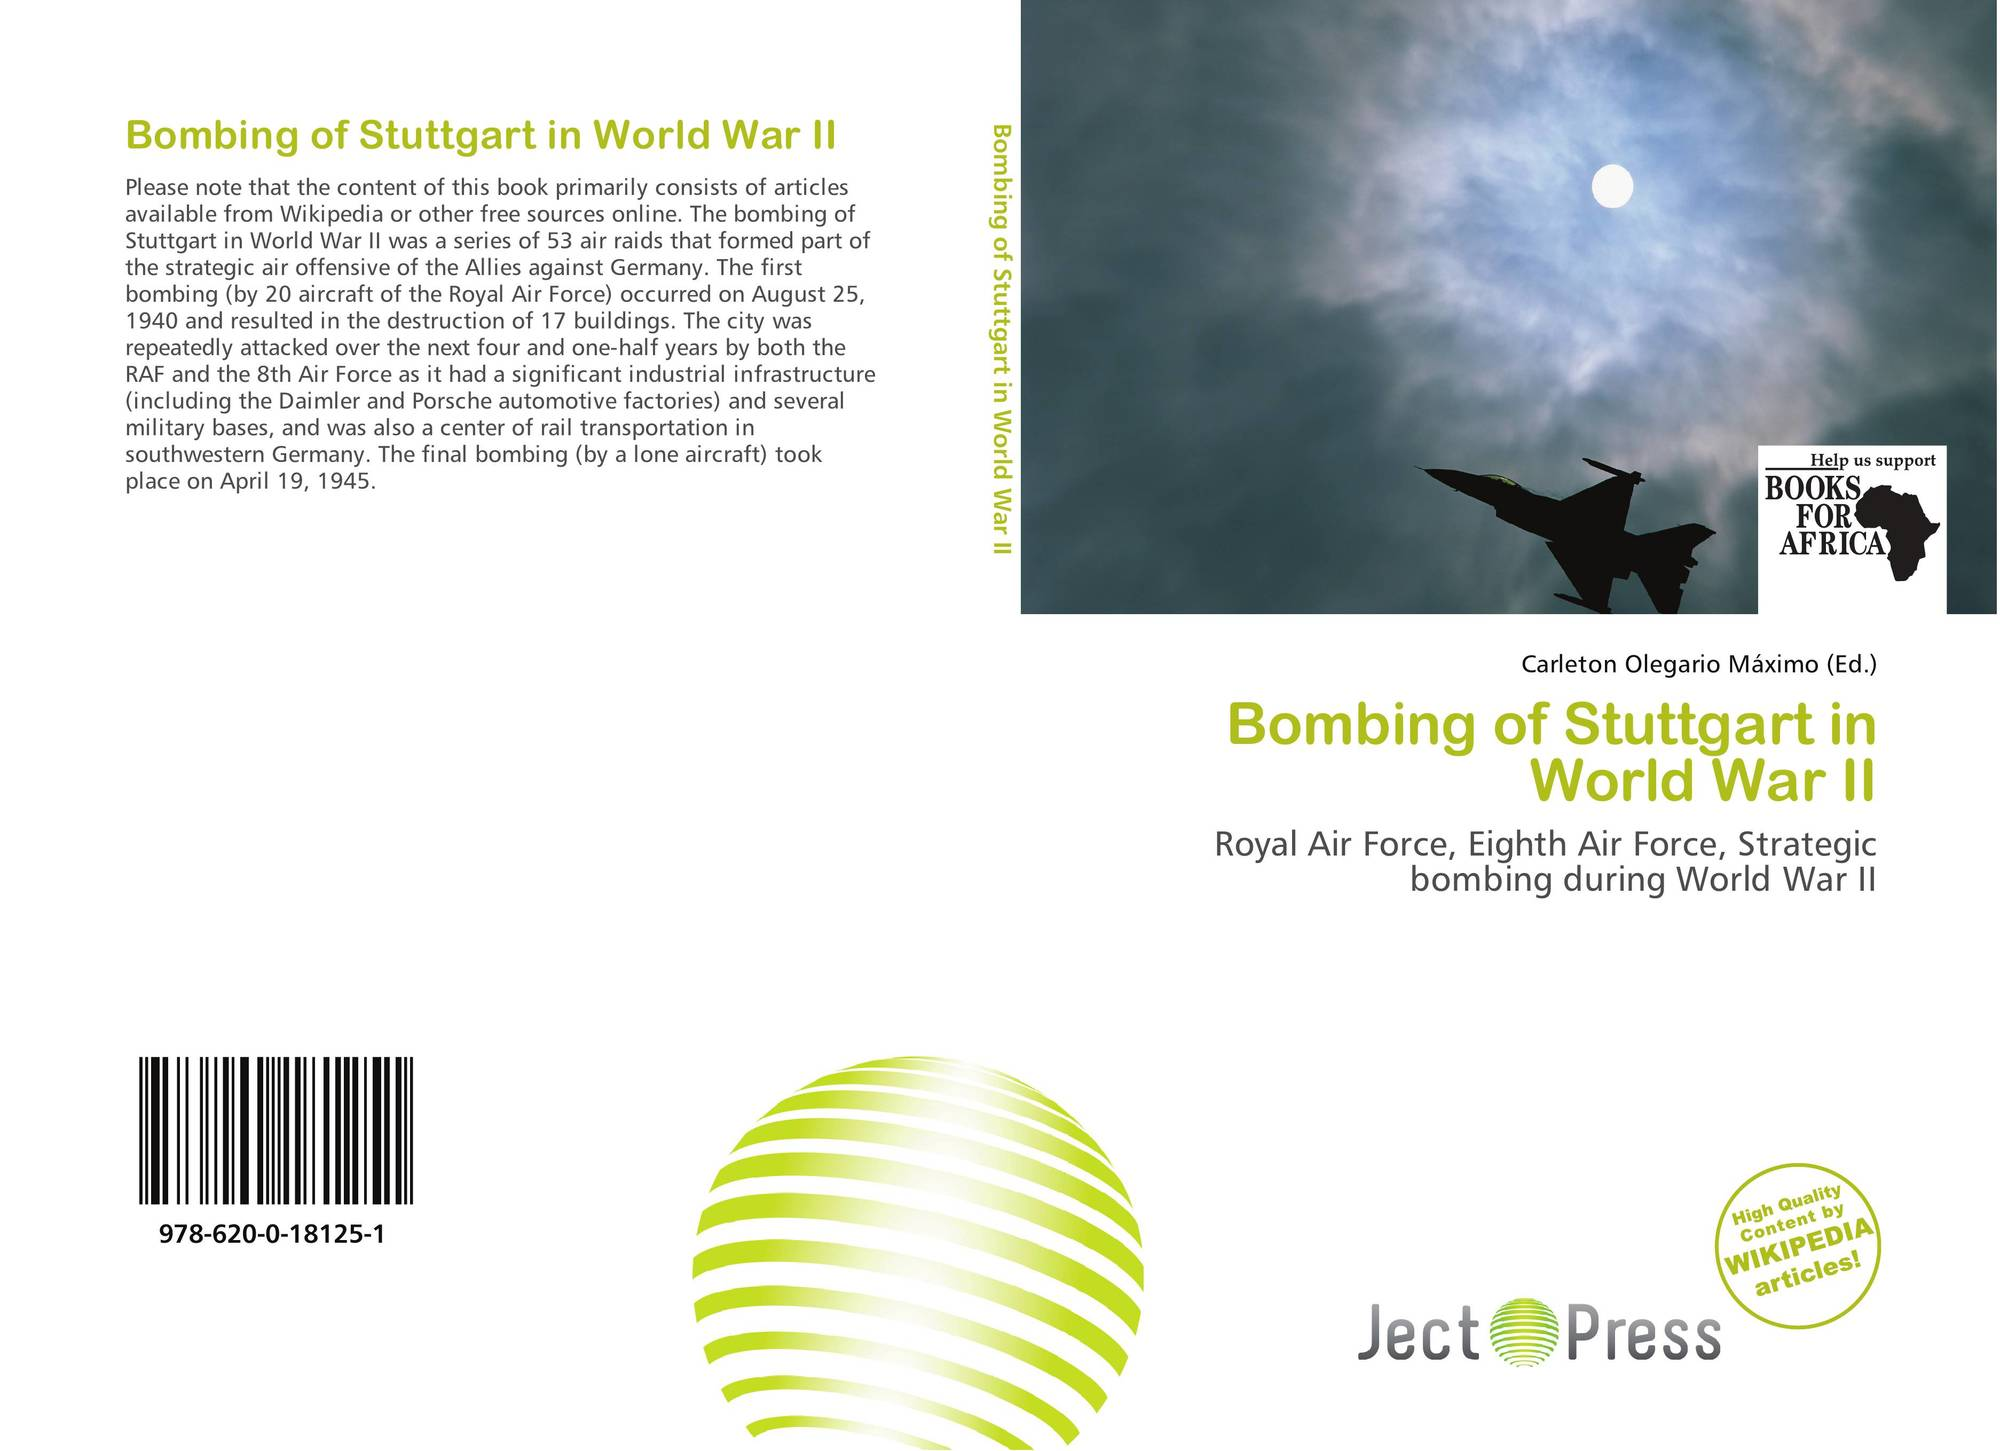 strategic bombing during world war 2 essay That was the unofficial motto of the british people in 1940 as bombs began to rain  down during the second world war to celebrate that  the heavy loss of  german aircraft, partly due to the flawed strategy of targeting cities and not british  airfields, meant hitler's invasion was called off  today's paper.